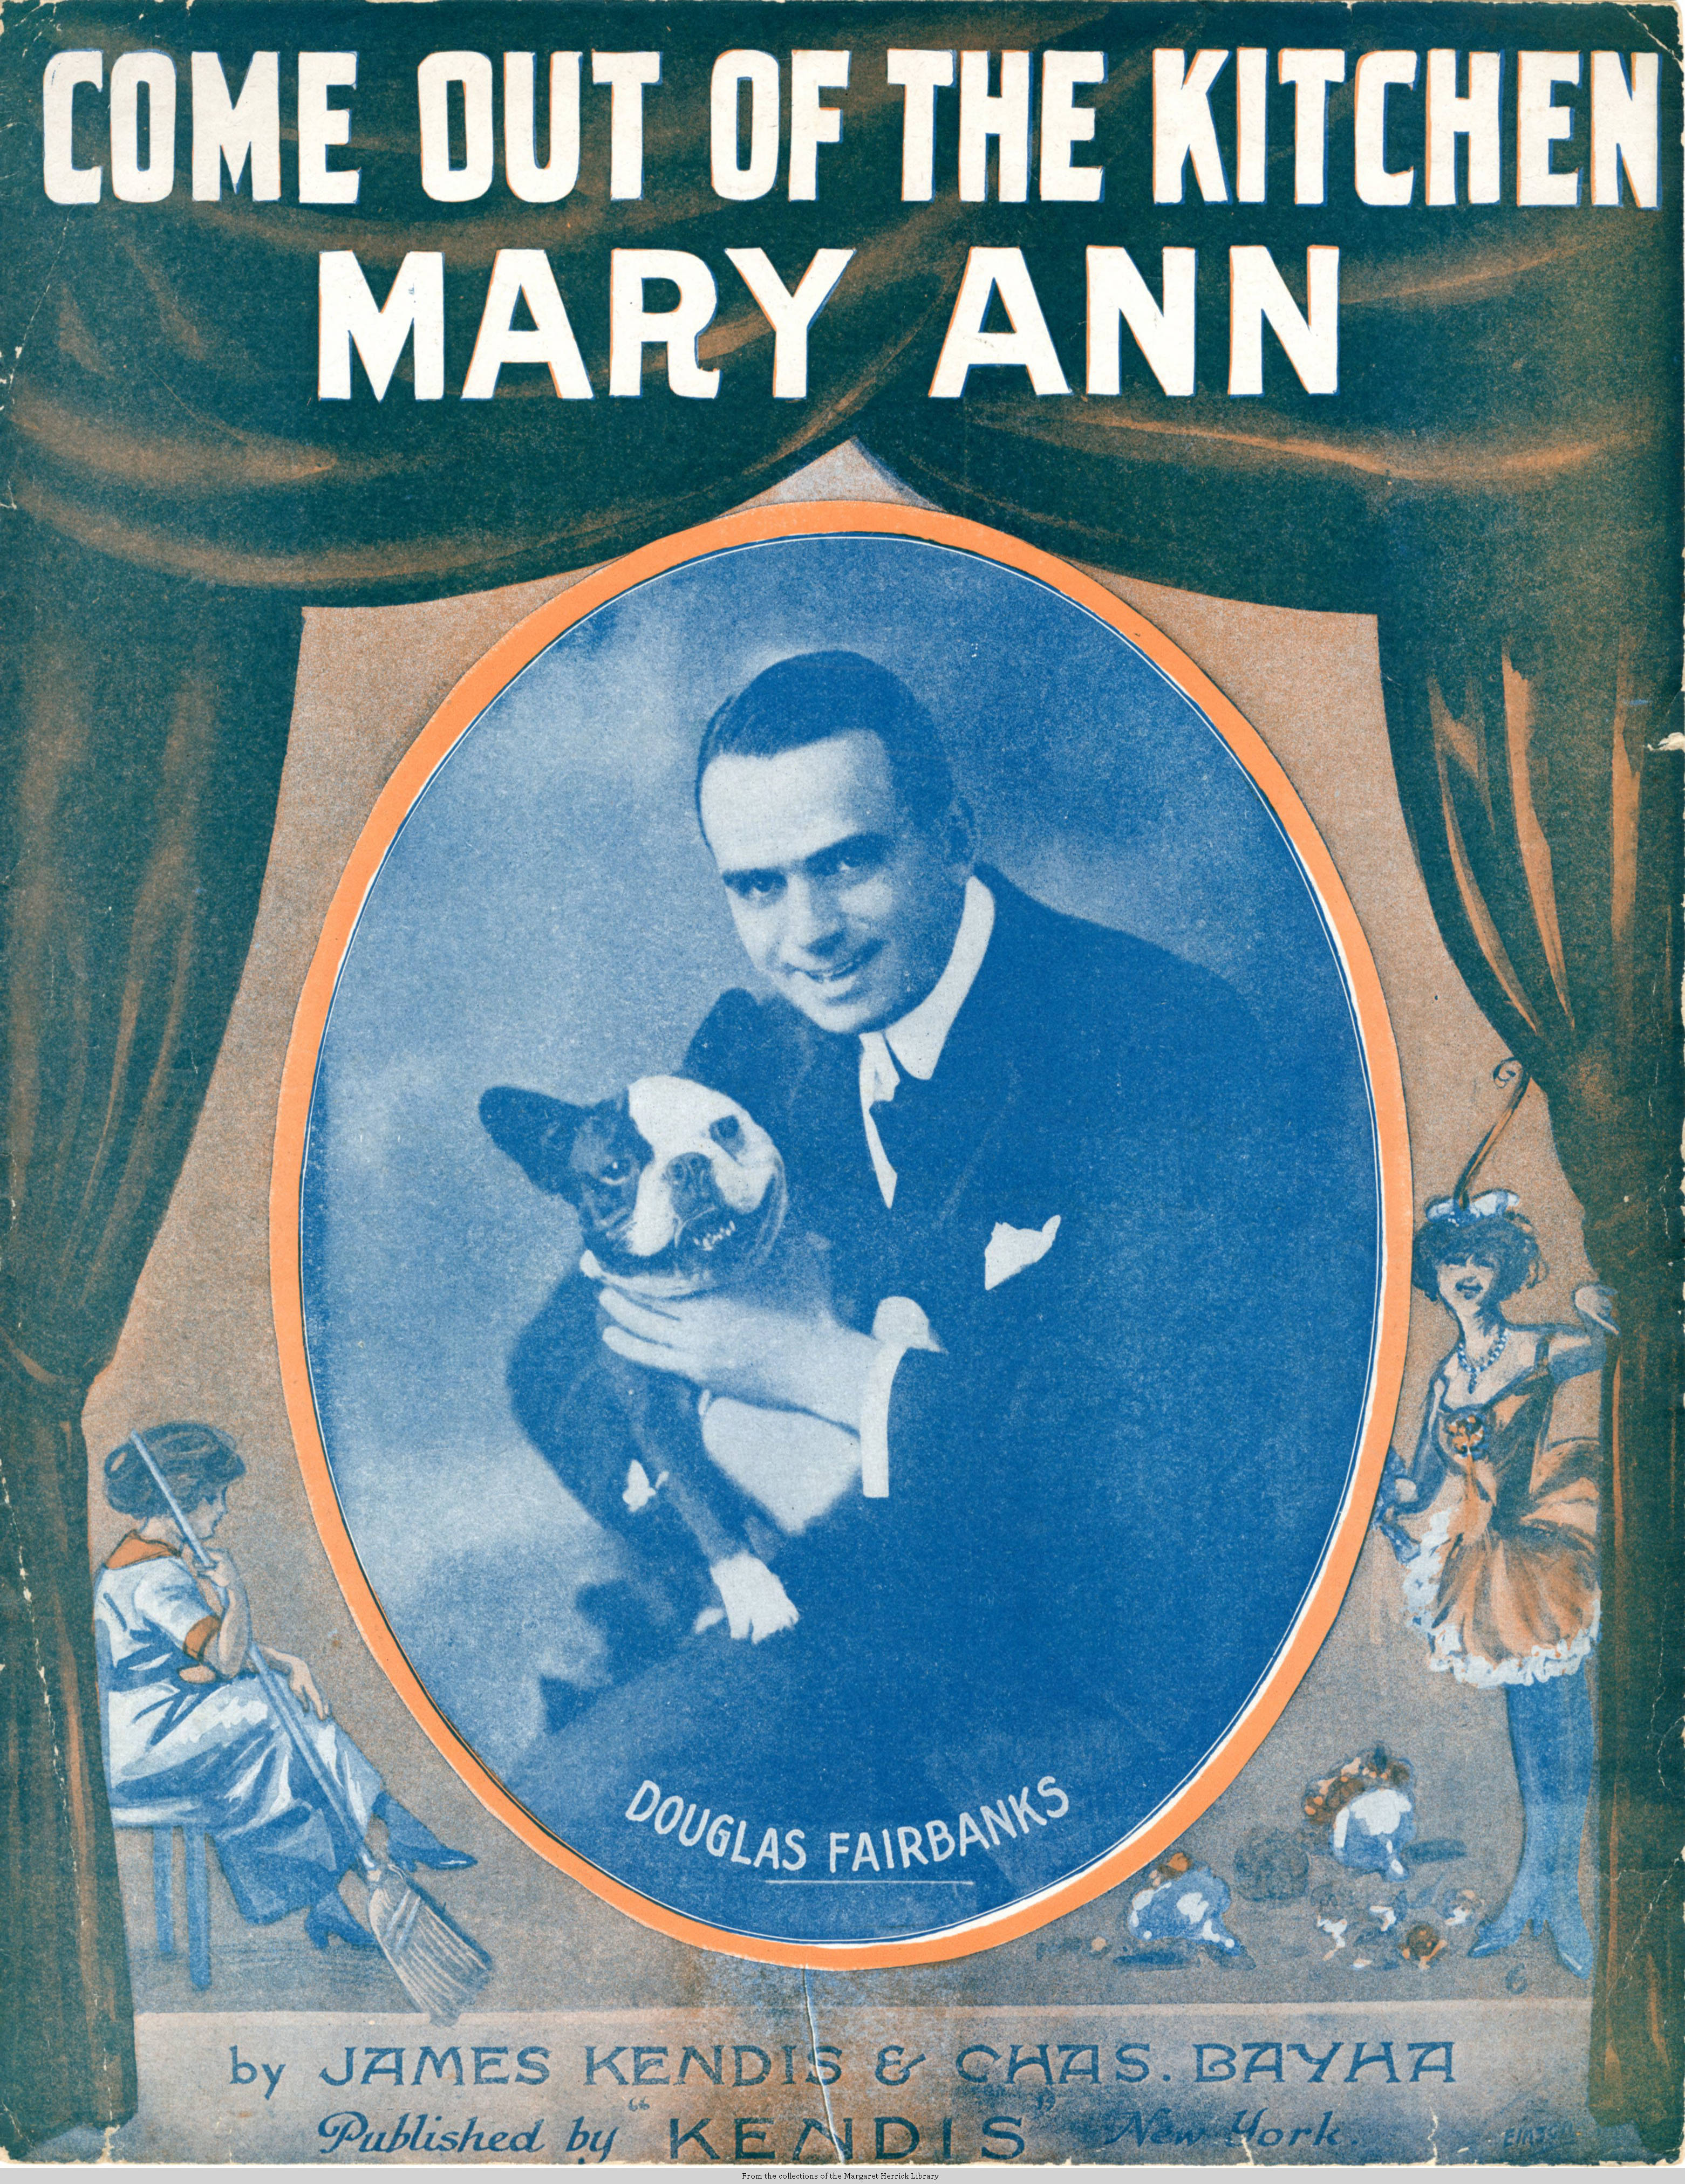 File:Sheet music cover - COME OUT OF THE KITCHEN MARY ANN (1915).jpg ...